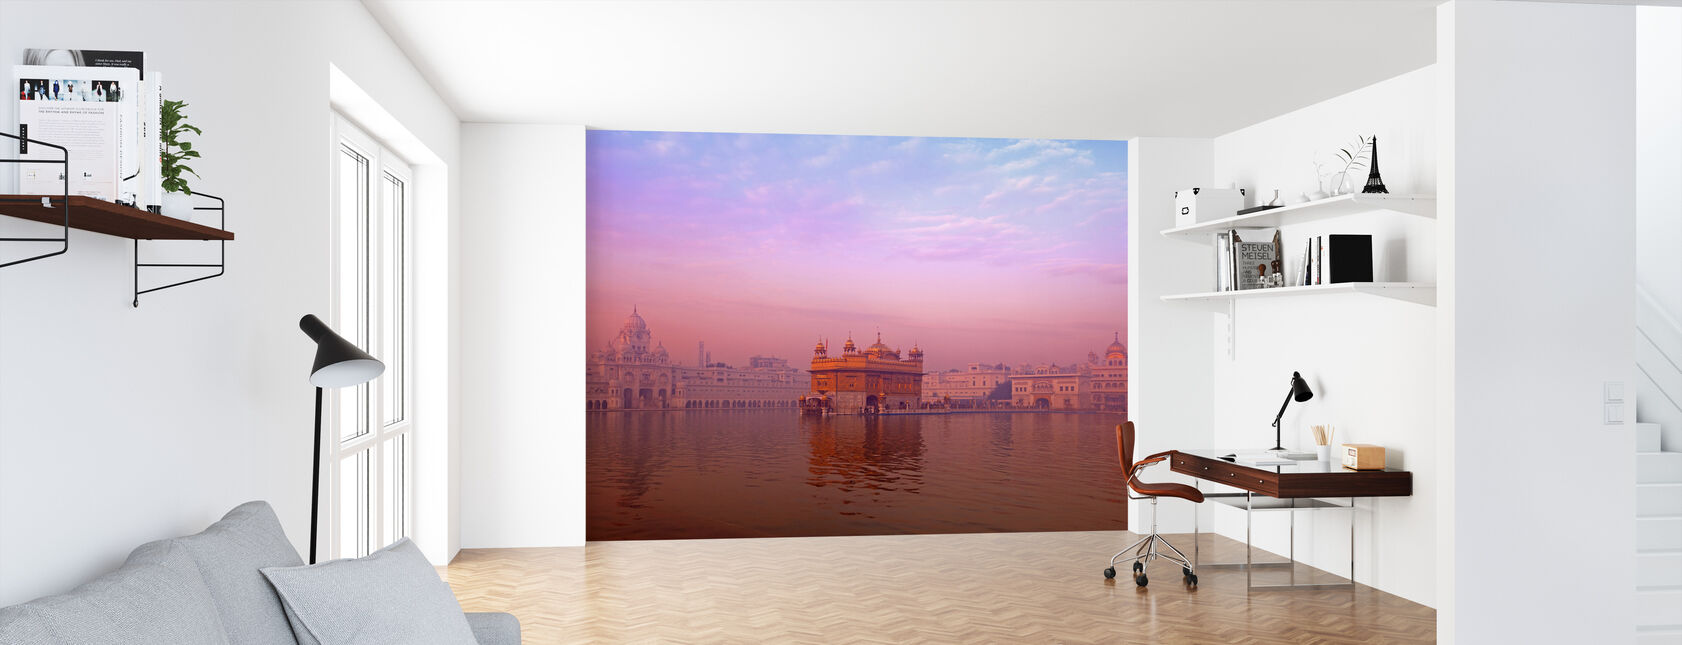 Dawn at The Golden Temple - Wallpaper - Office